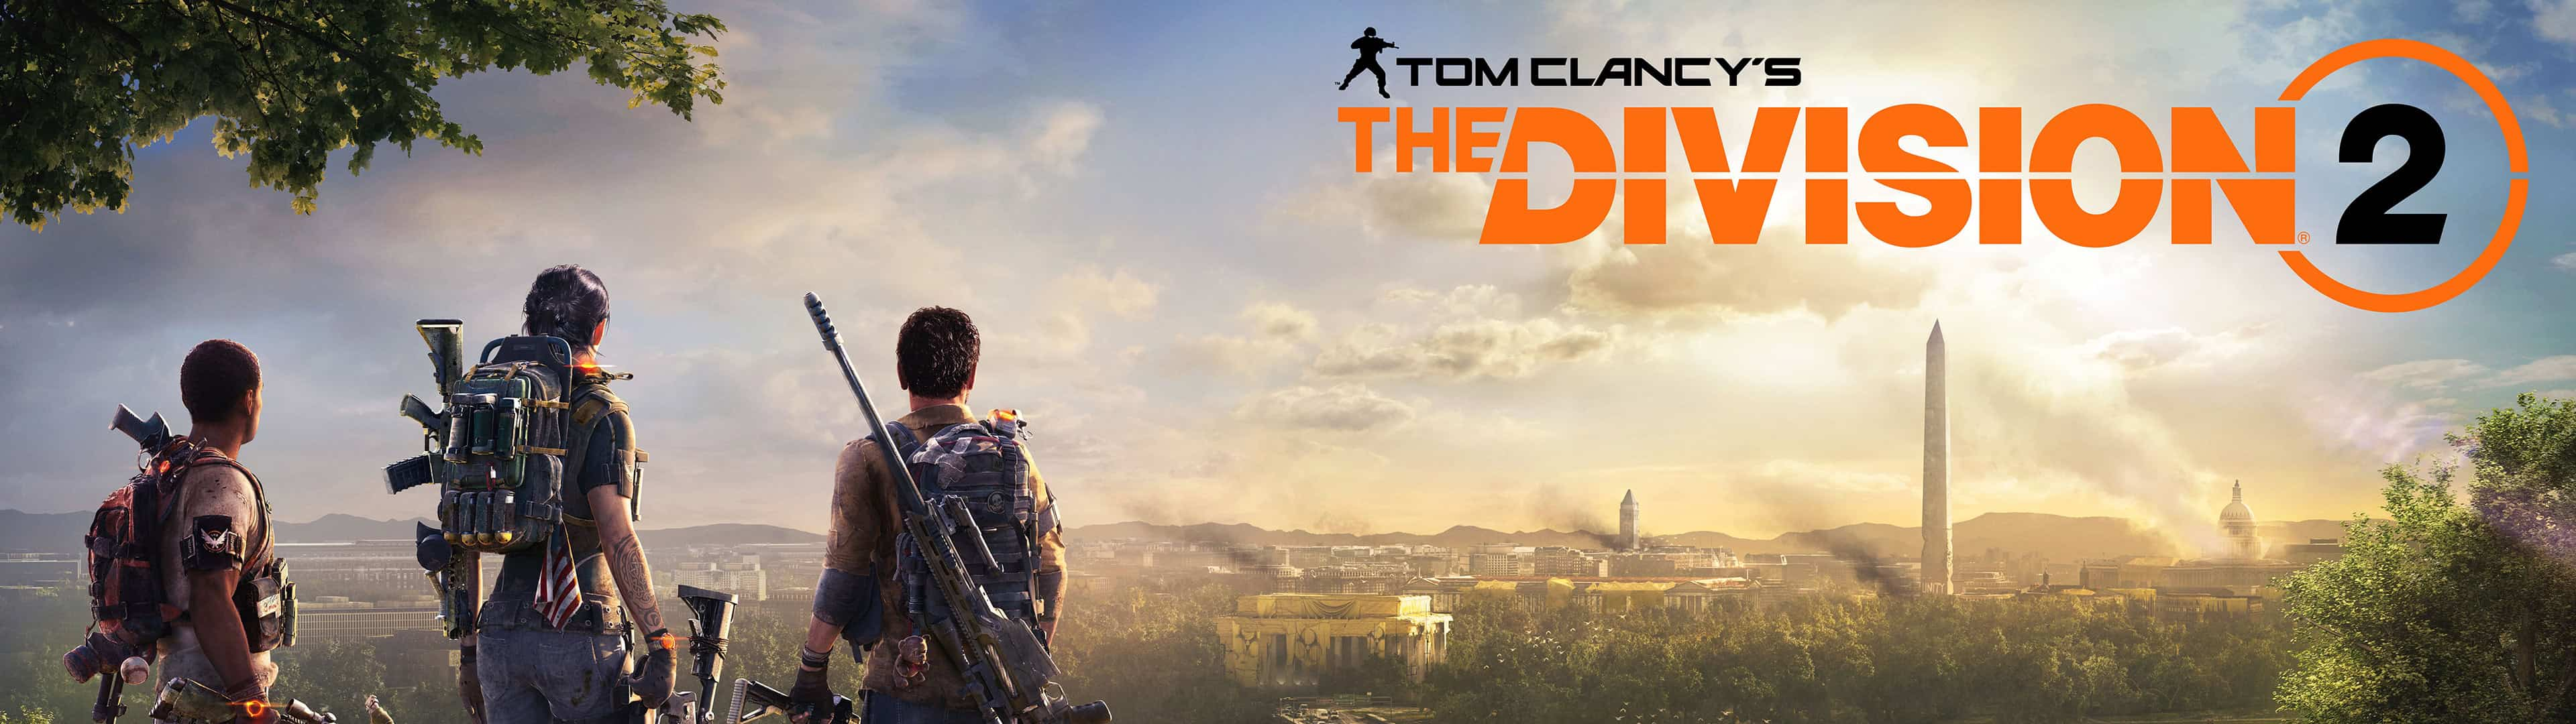 Tom Clancy S The Division 2 4k Wallpapers Wallpaper Cave